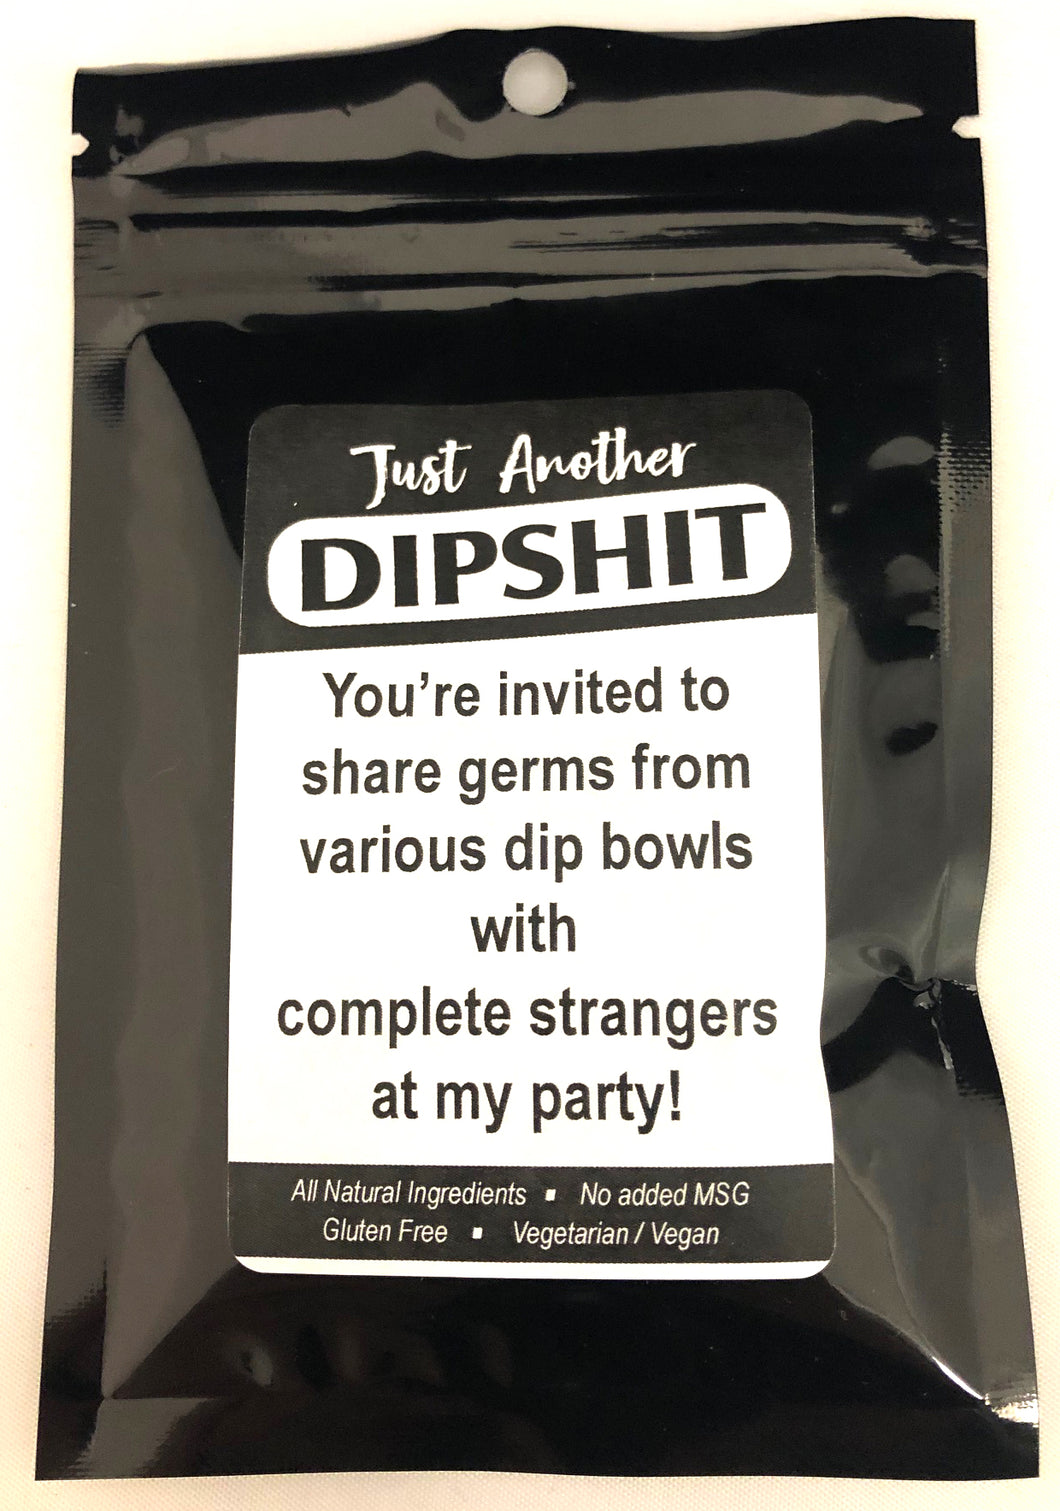 Share Germs Dip Shit